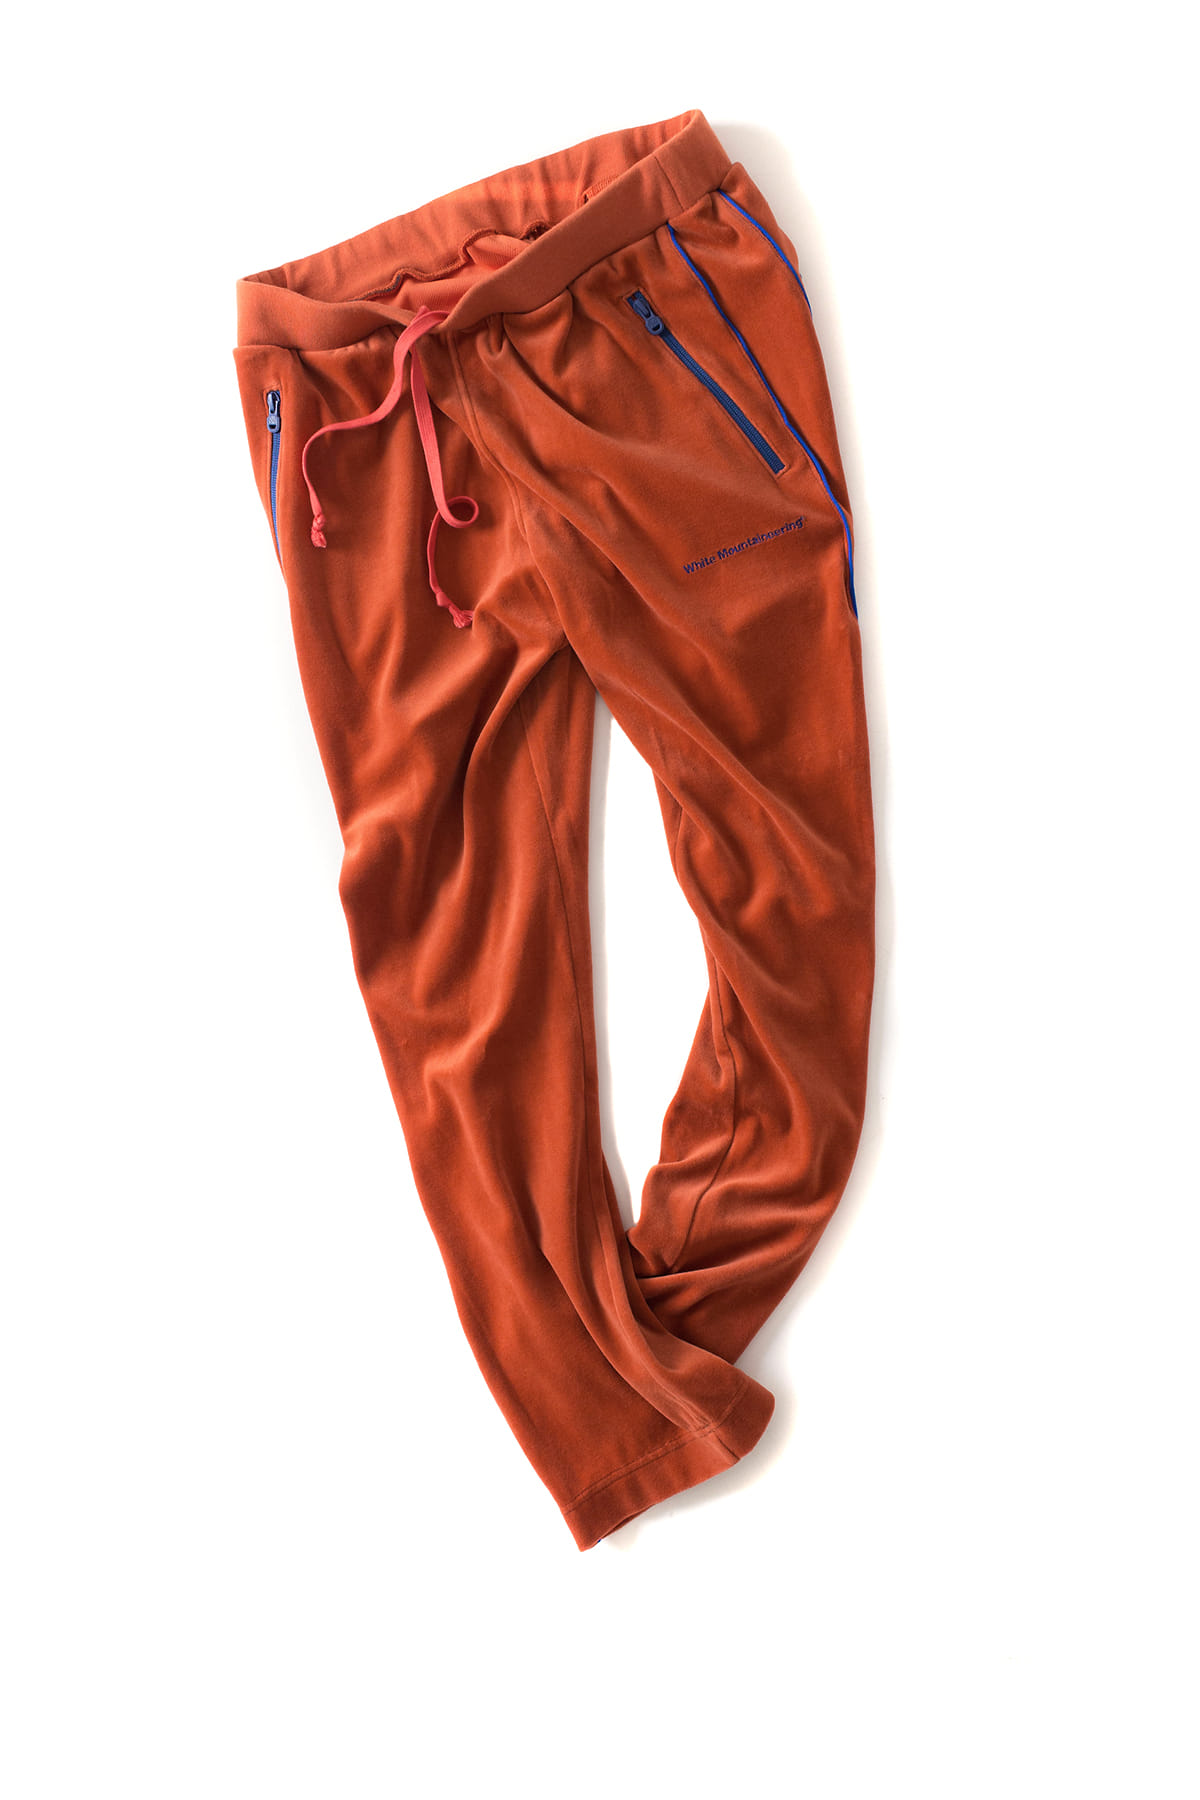 WHITE MOUNTAINEERING : Velour Track Pants (Orange)